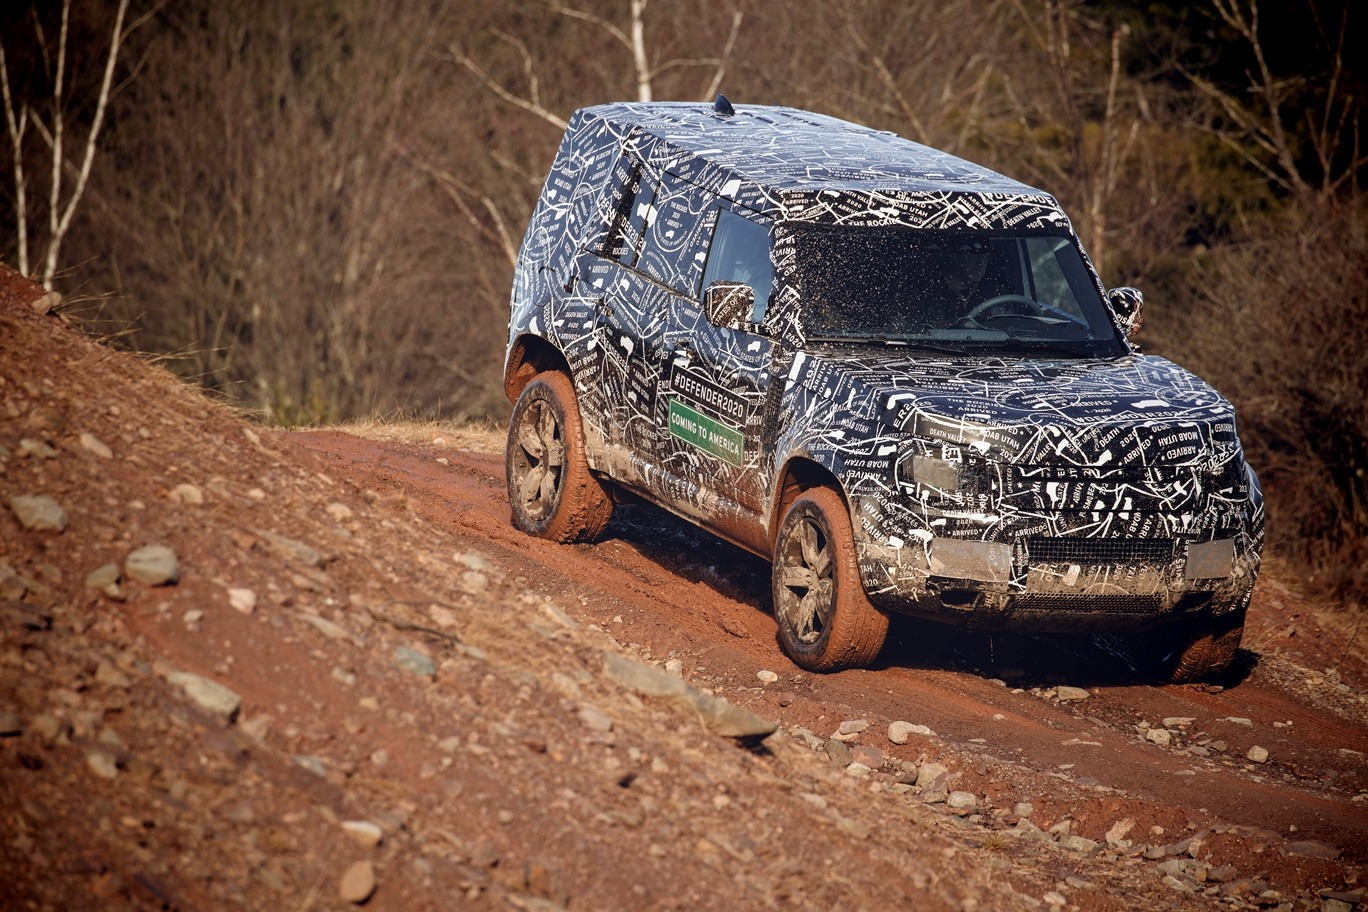 Landrover Defender 2018 >> Here Are Official Spy Photos Of the U.S.-bound 2020 Land Rover Defender - autoevolution